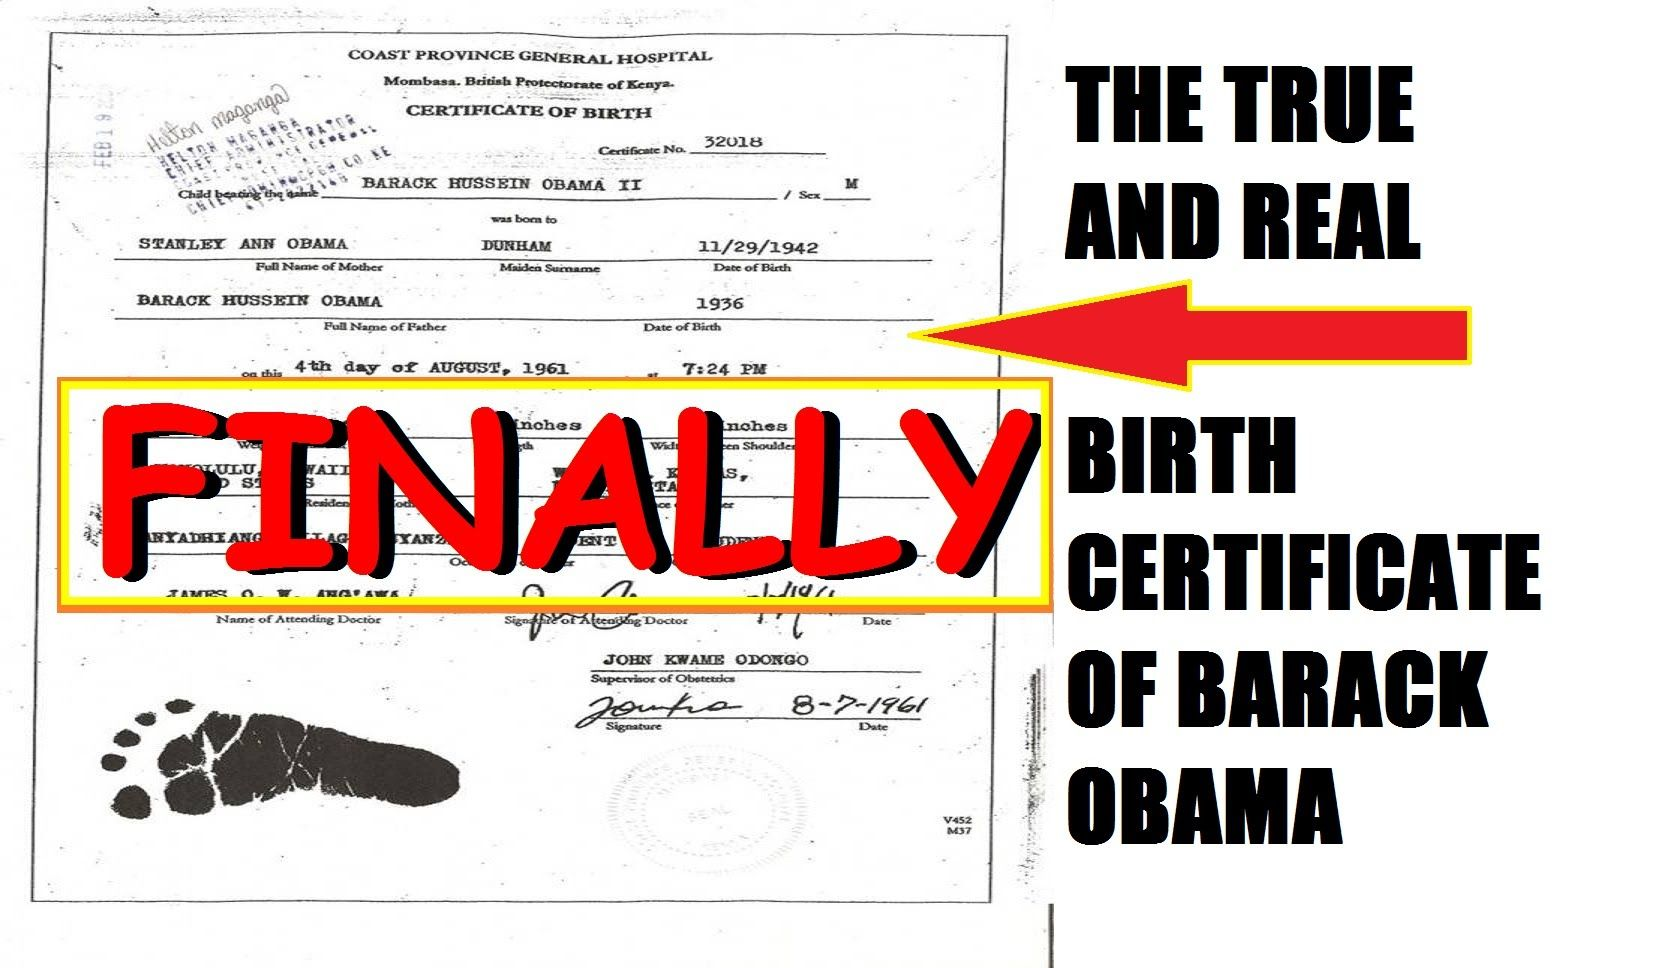 Finally The True And Real Birth Certificate Of Barack Obama